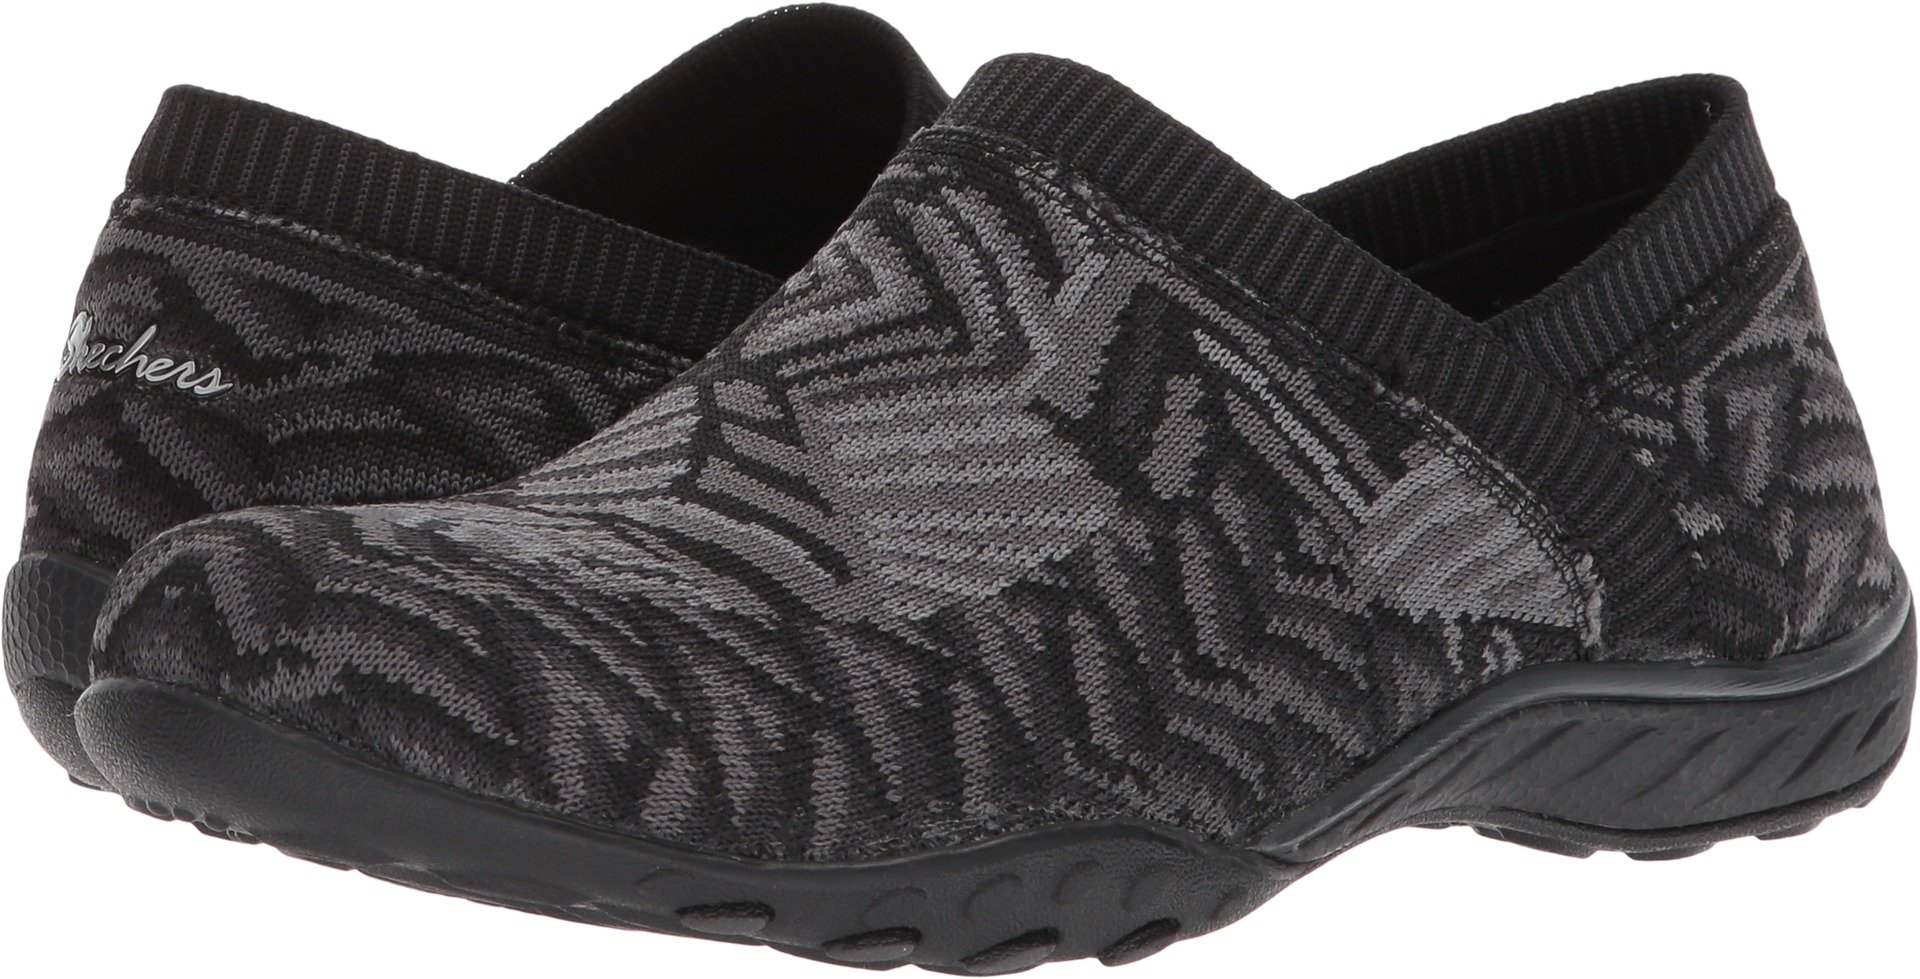 Skechers Women's Breathe-Easy - Lassie Black/Gray 7.5 B US by Skechers (Image #1)